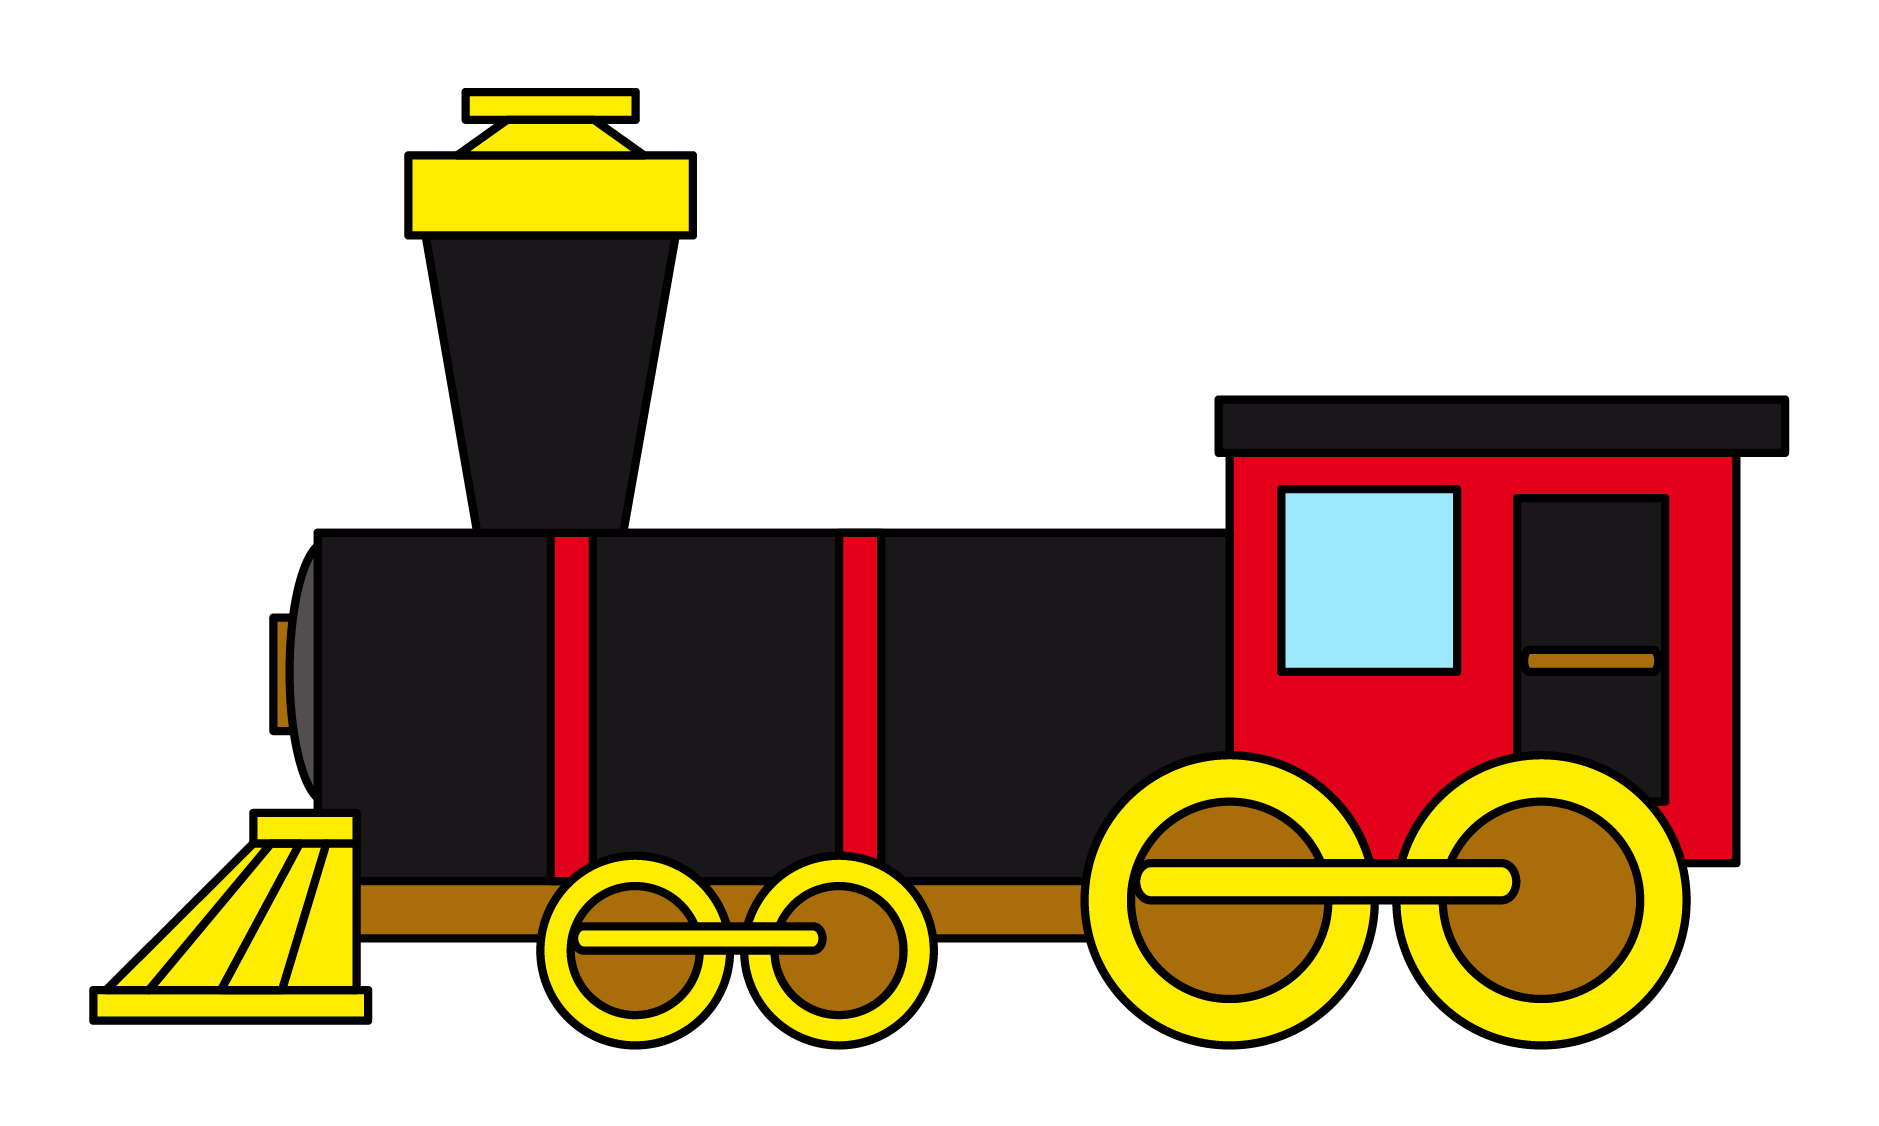 Stop clipart railroad Clipartix Train use Train to